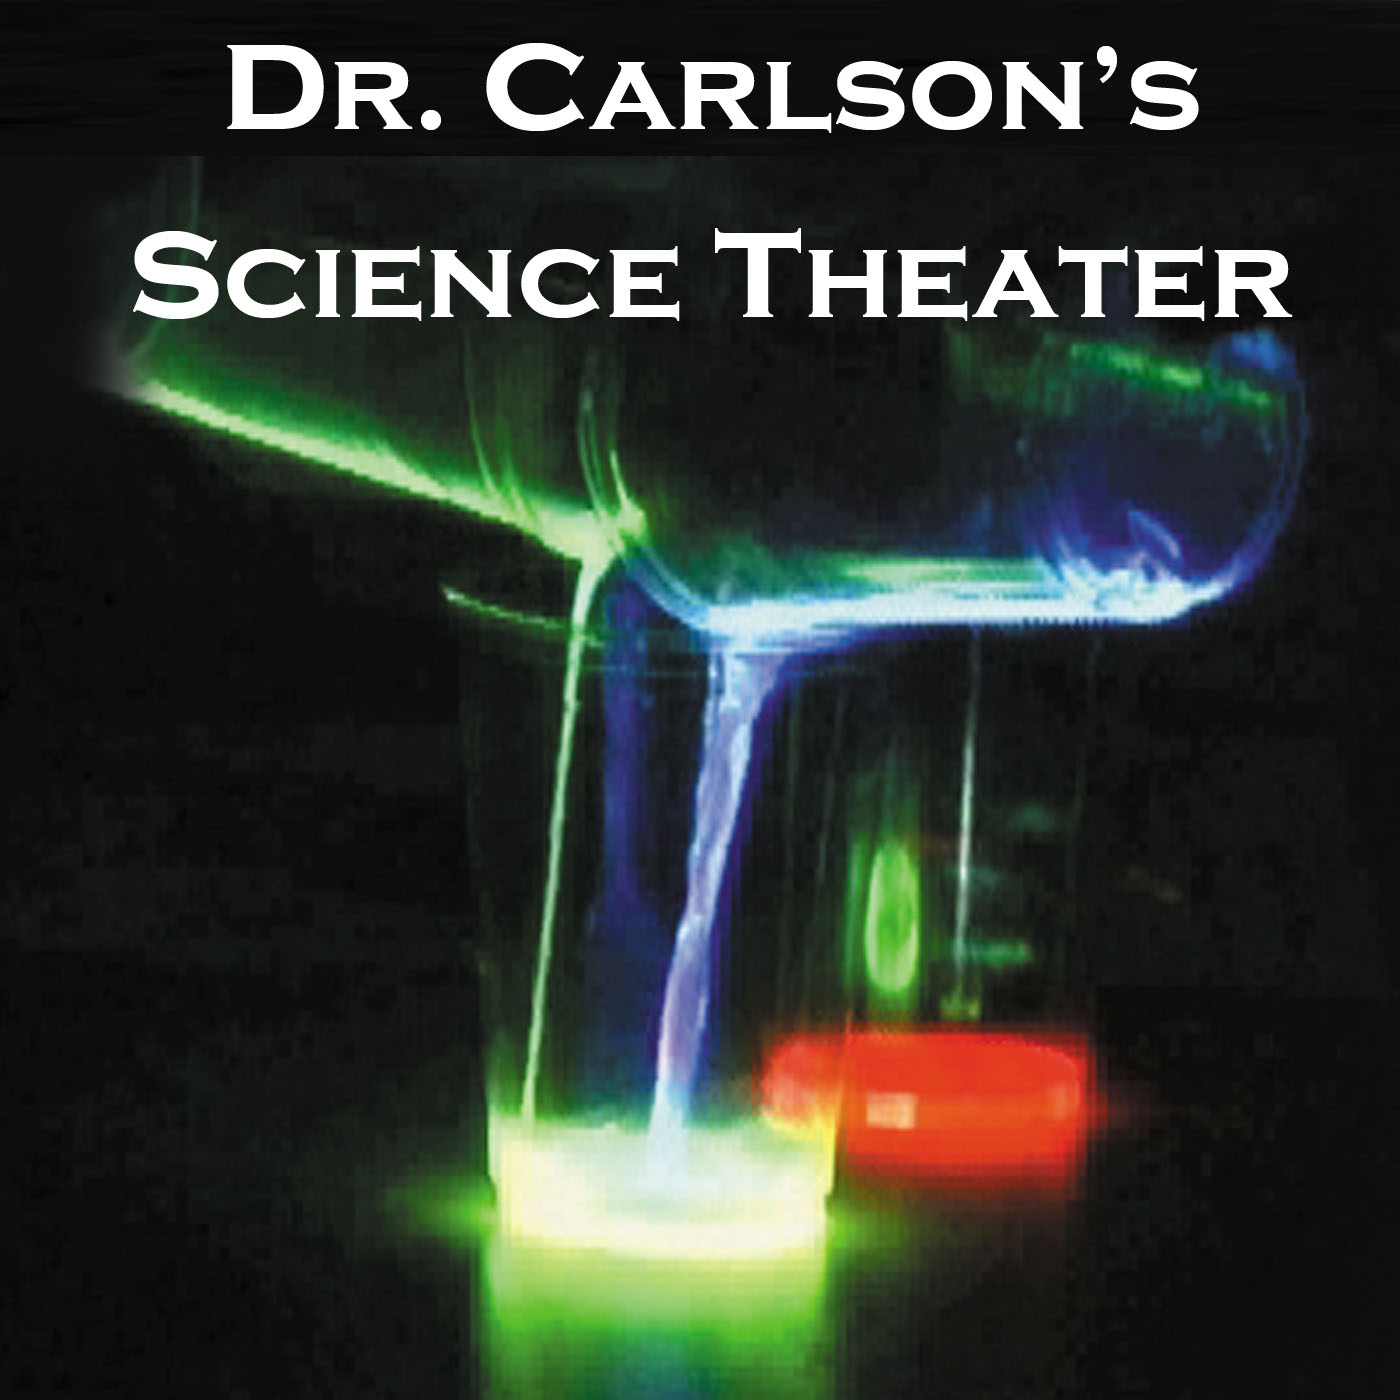 Dr. Carlson's Science Theater